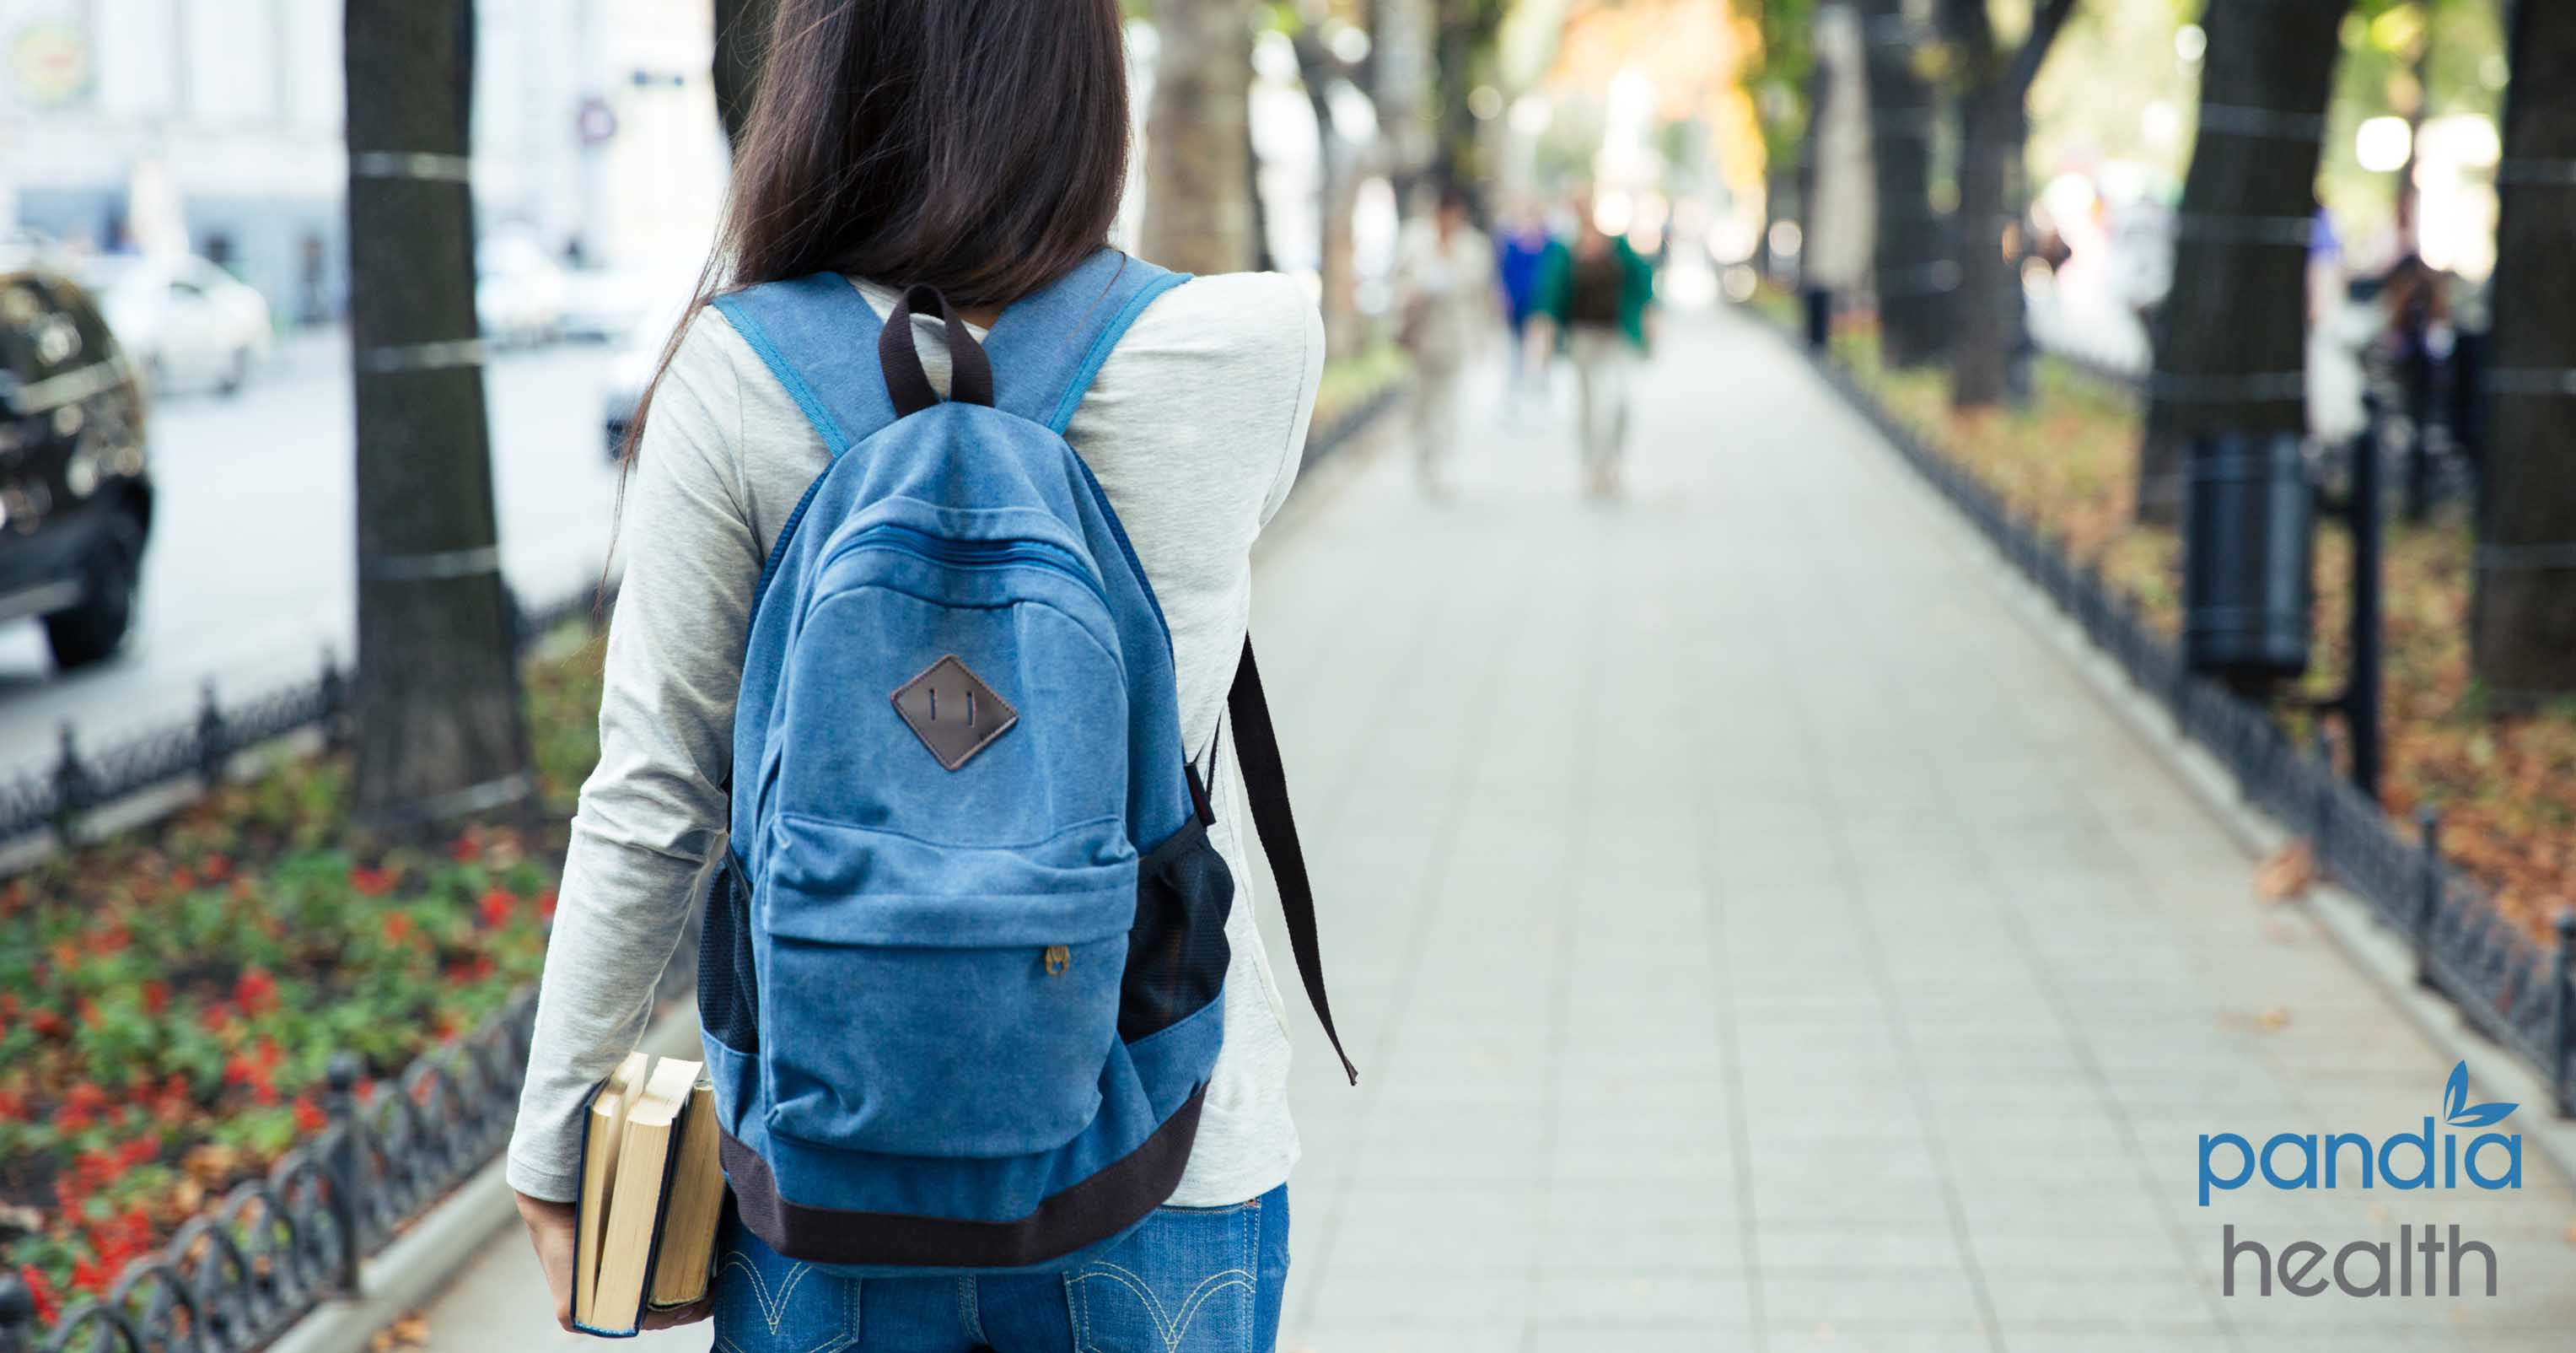 Woman walking with backpack and holding books